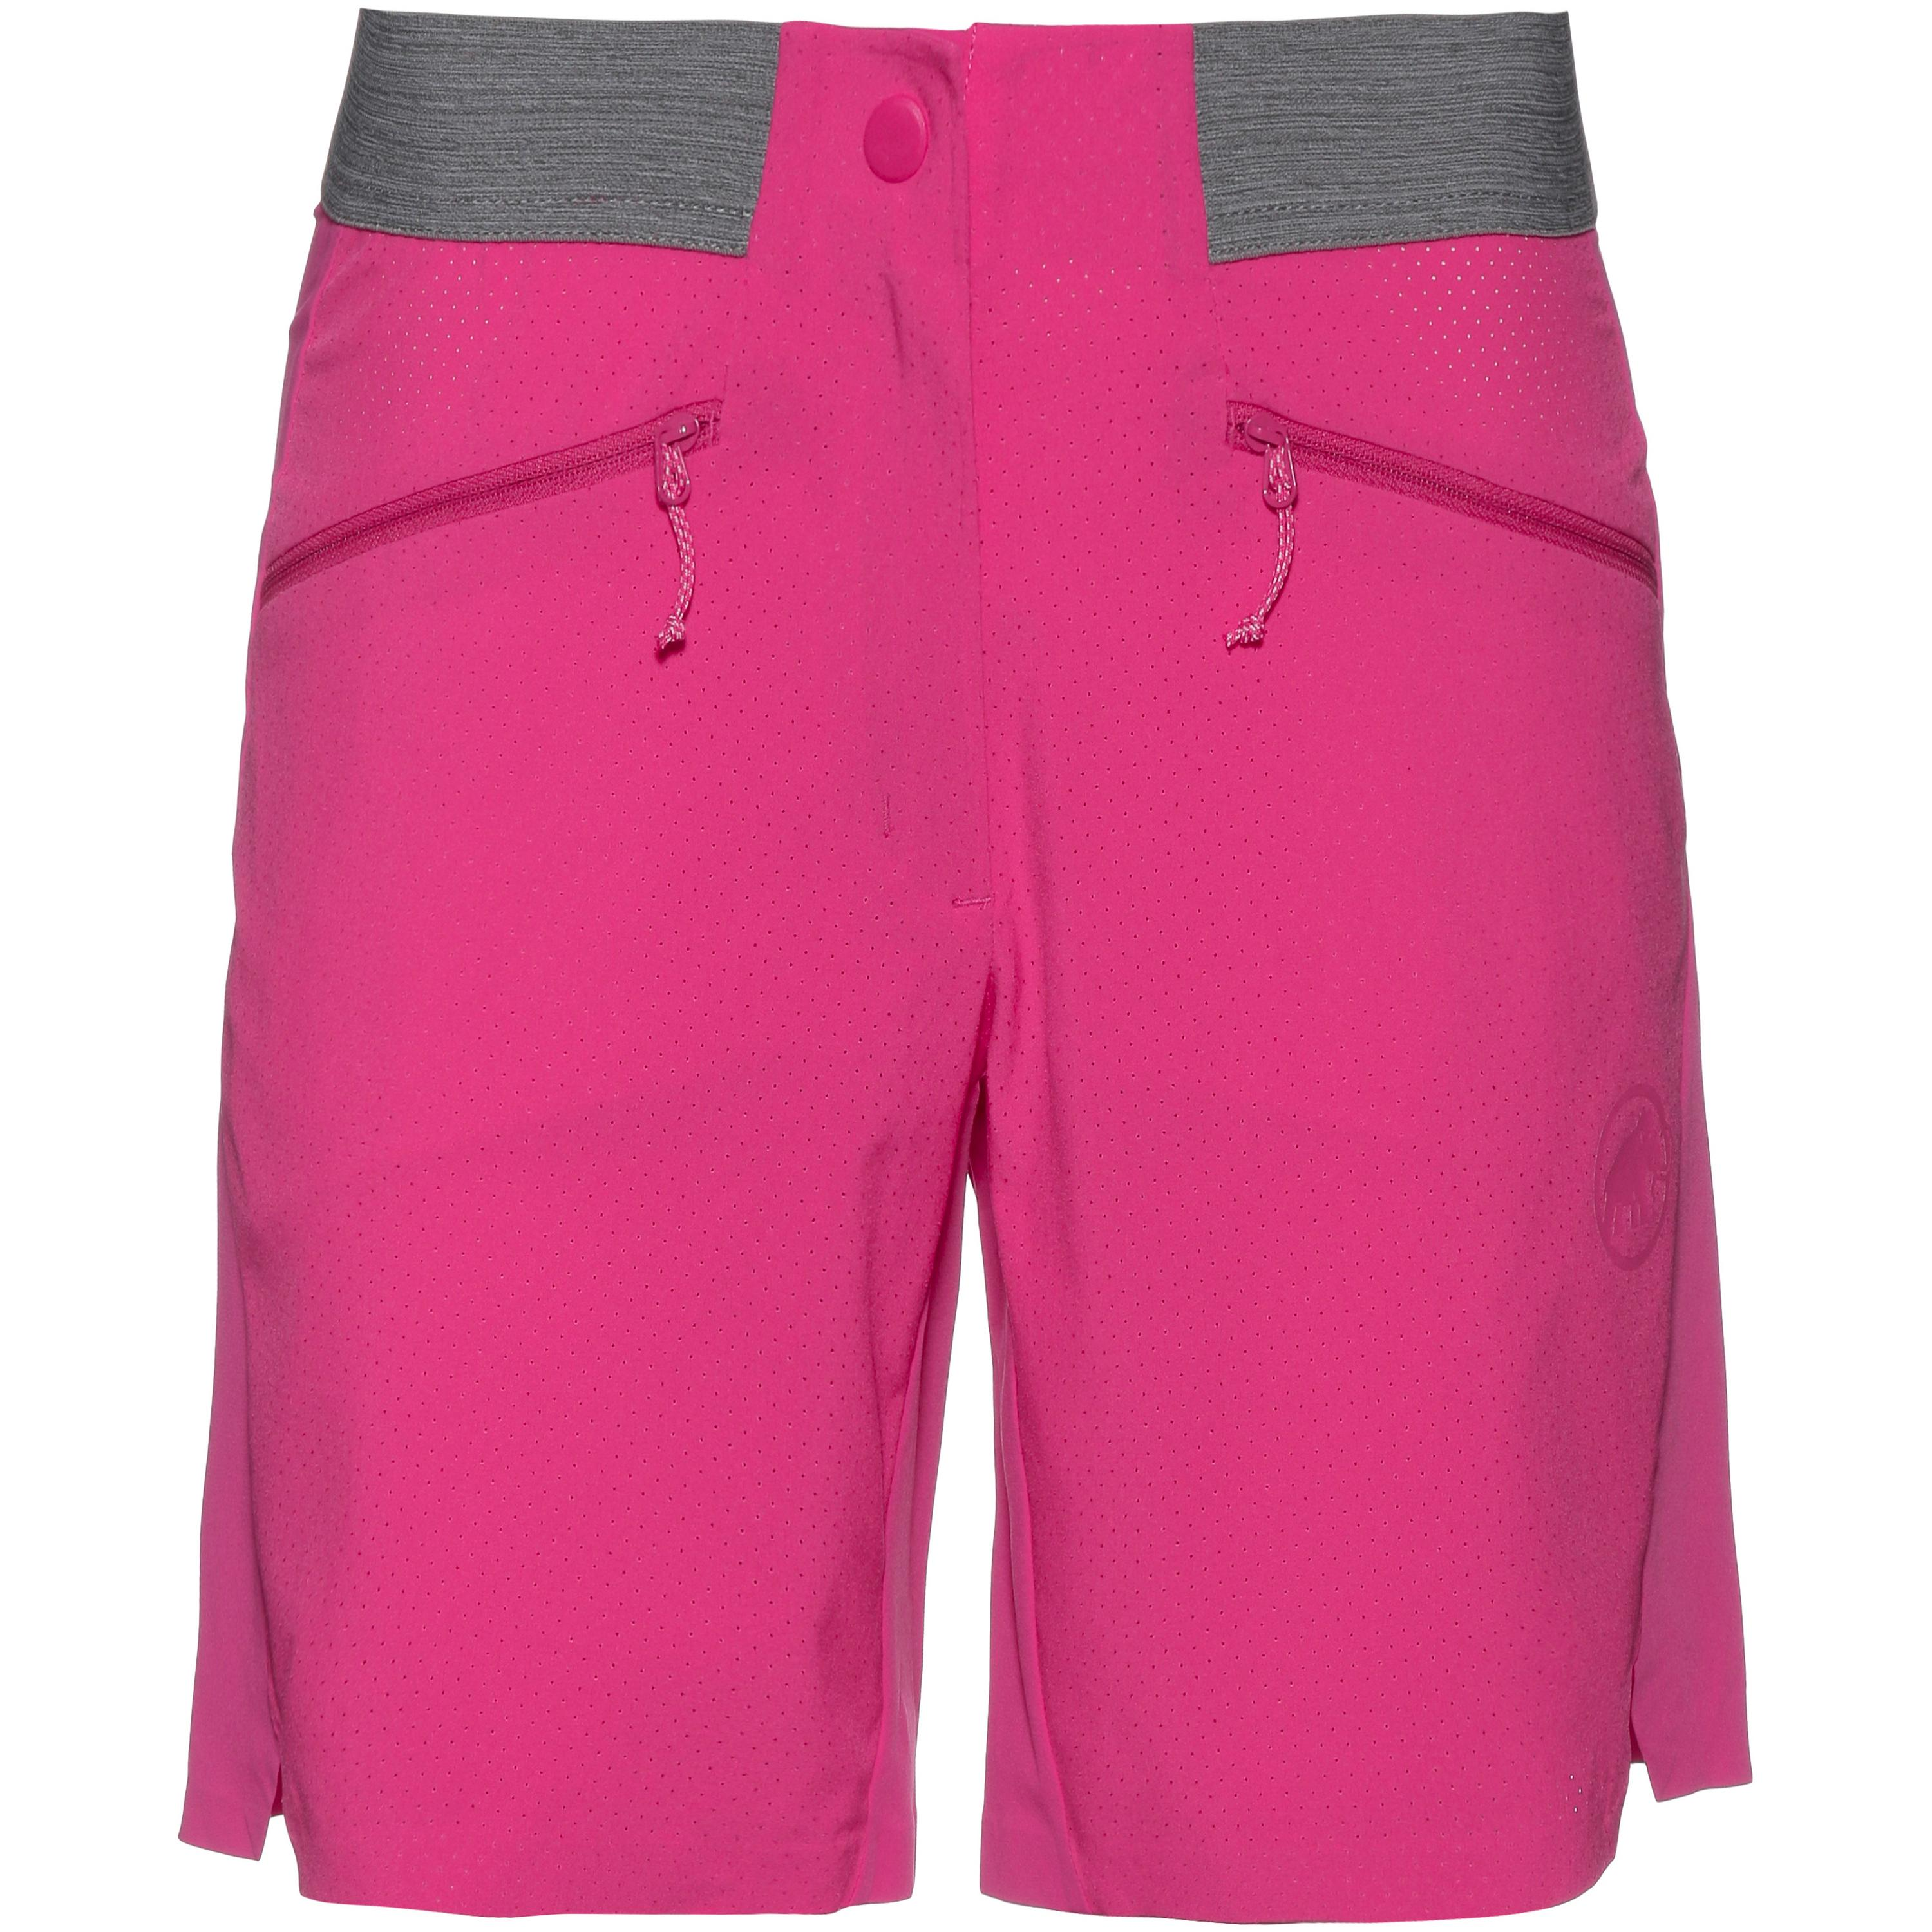 Mammut Sertig Funktionsshorts Damen Shorts 34 Normal